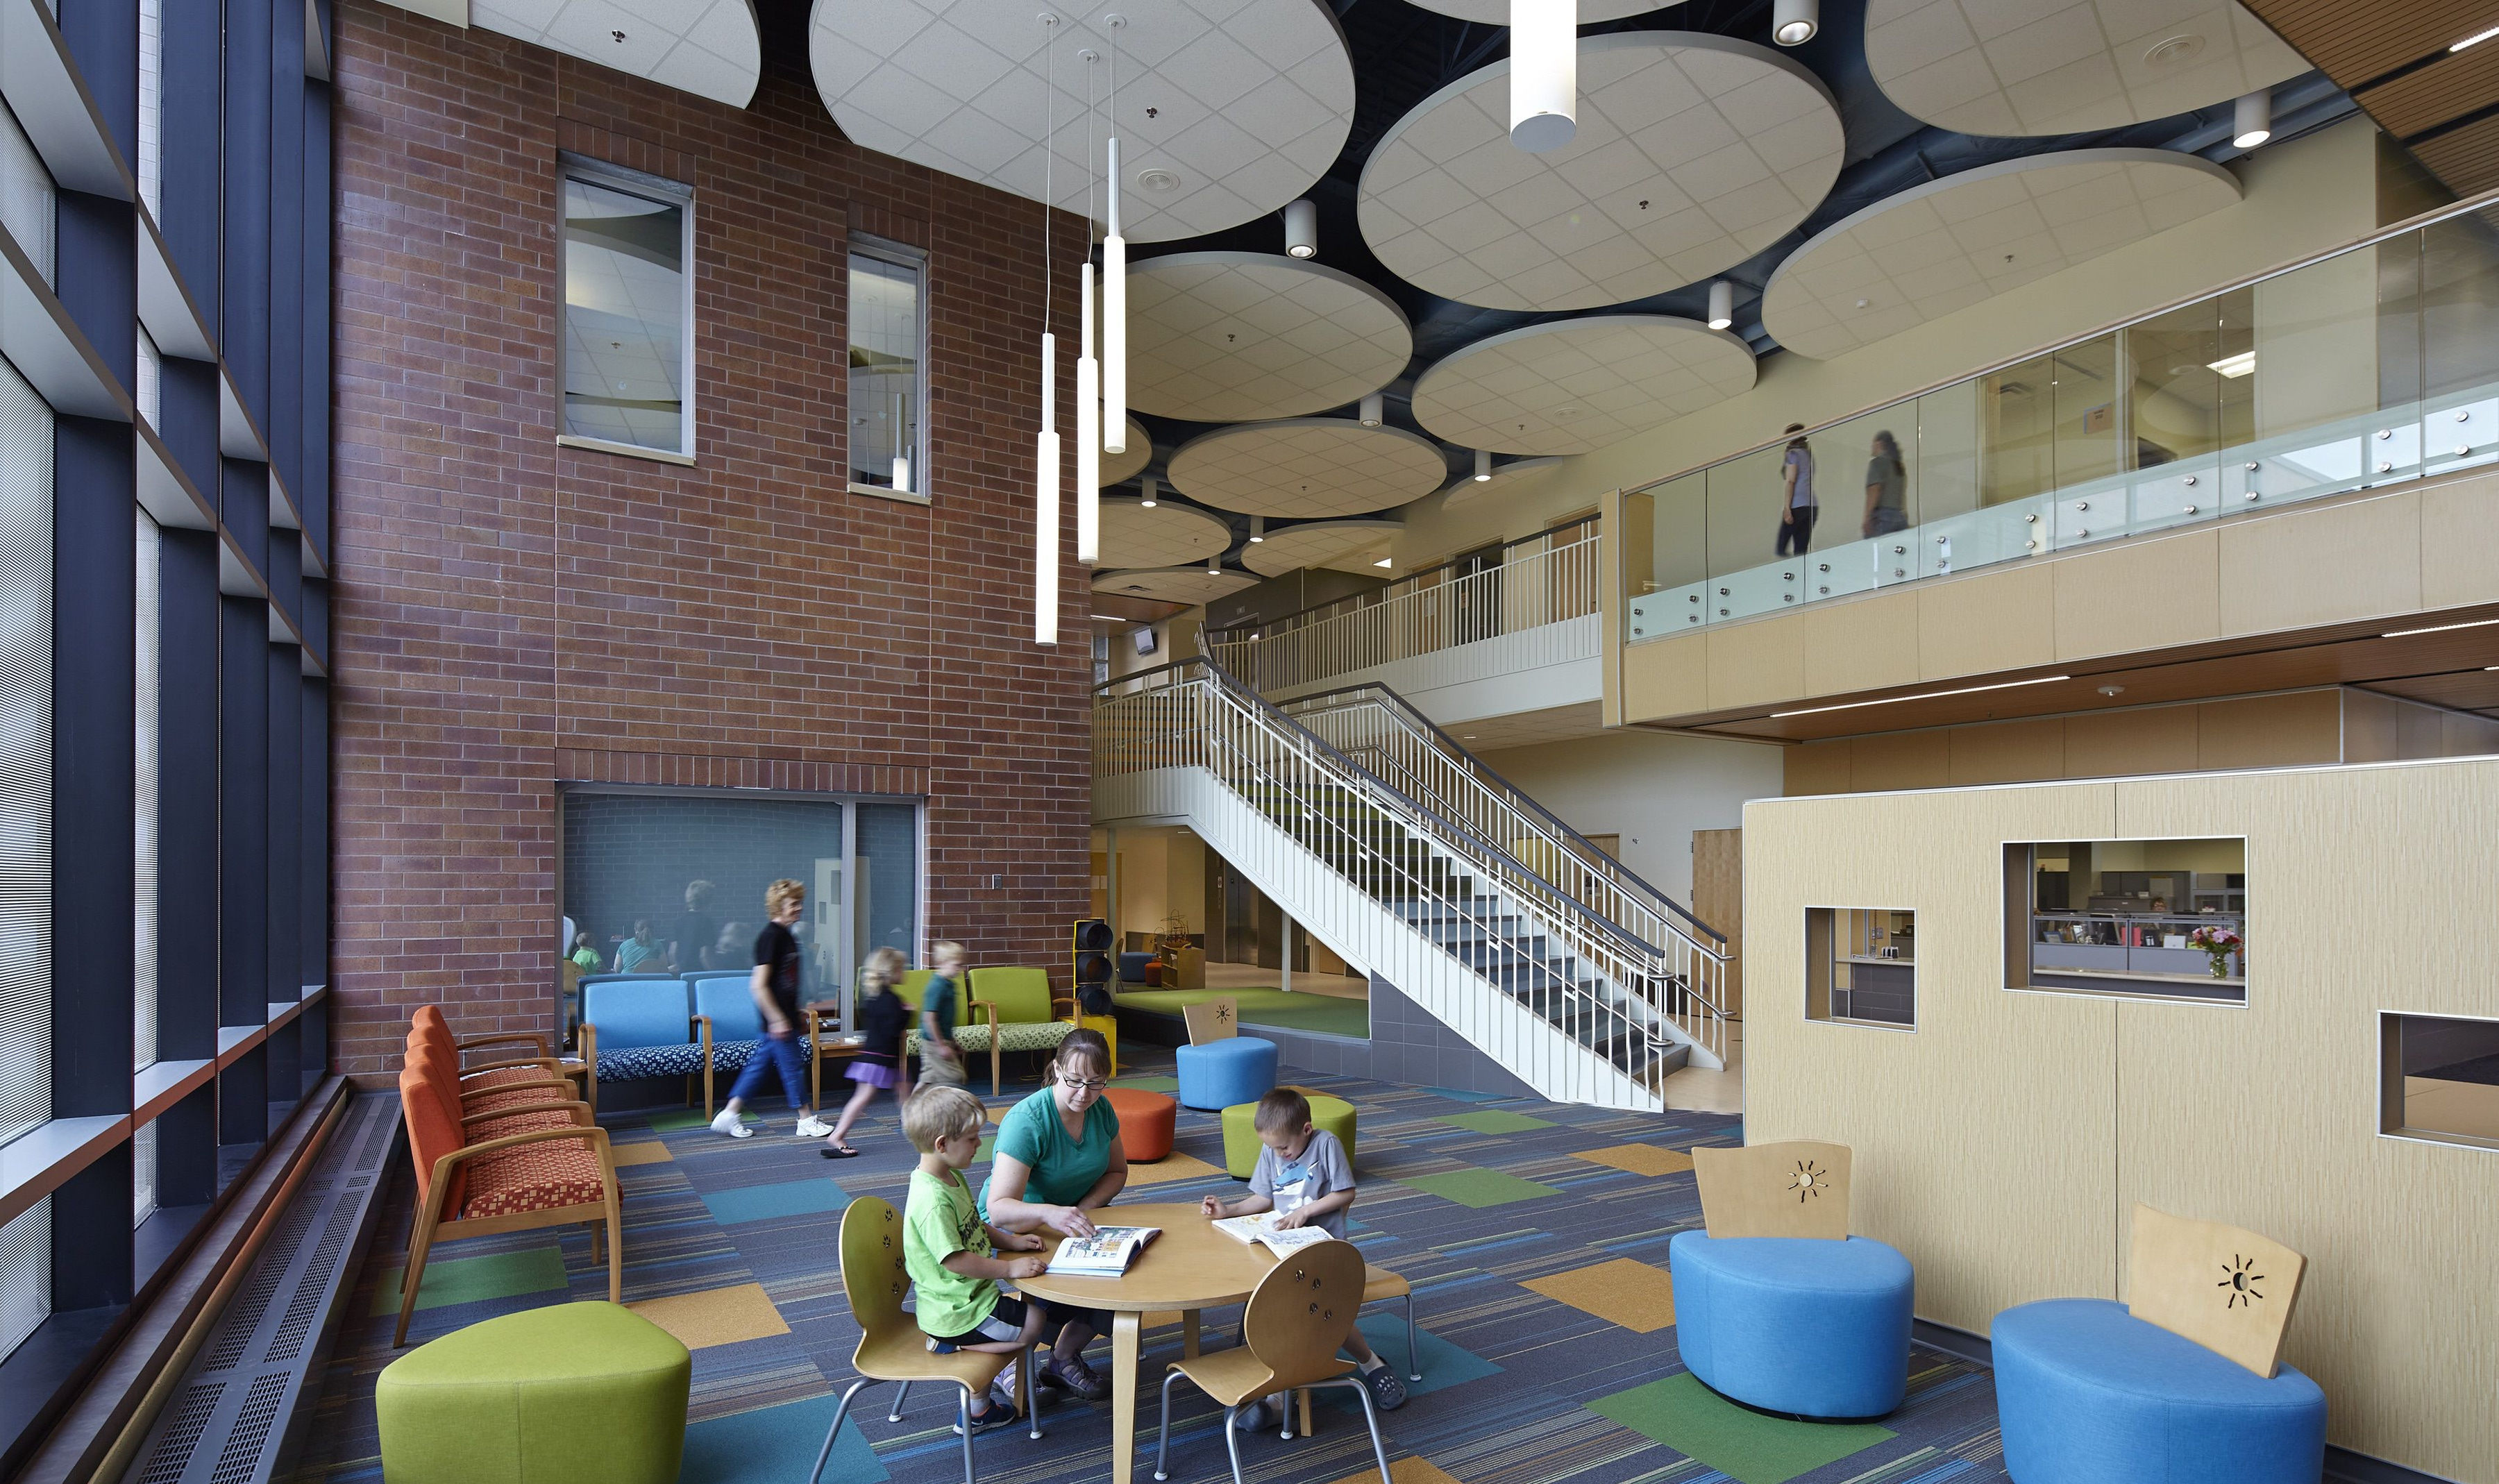 Architecture of Early Childhood